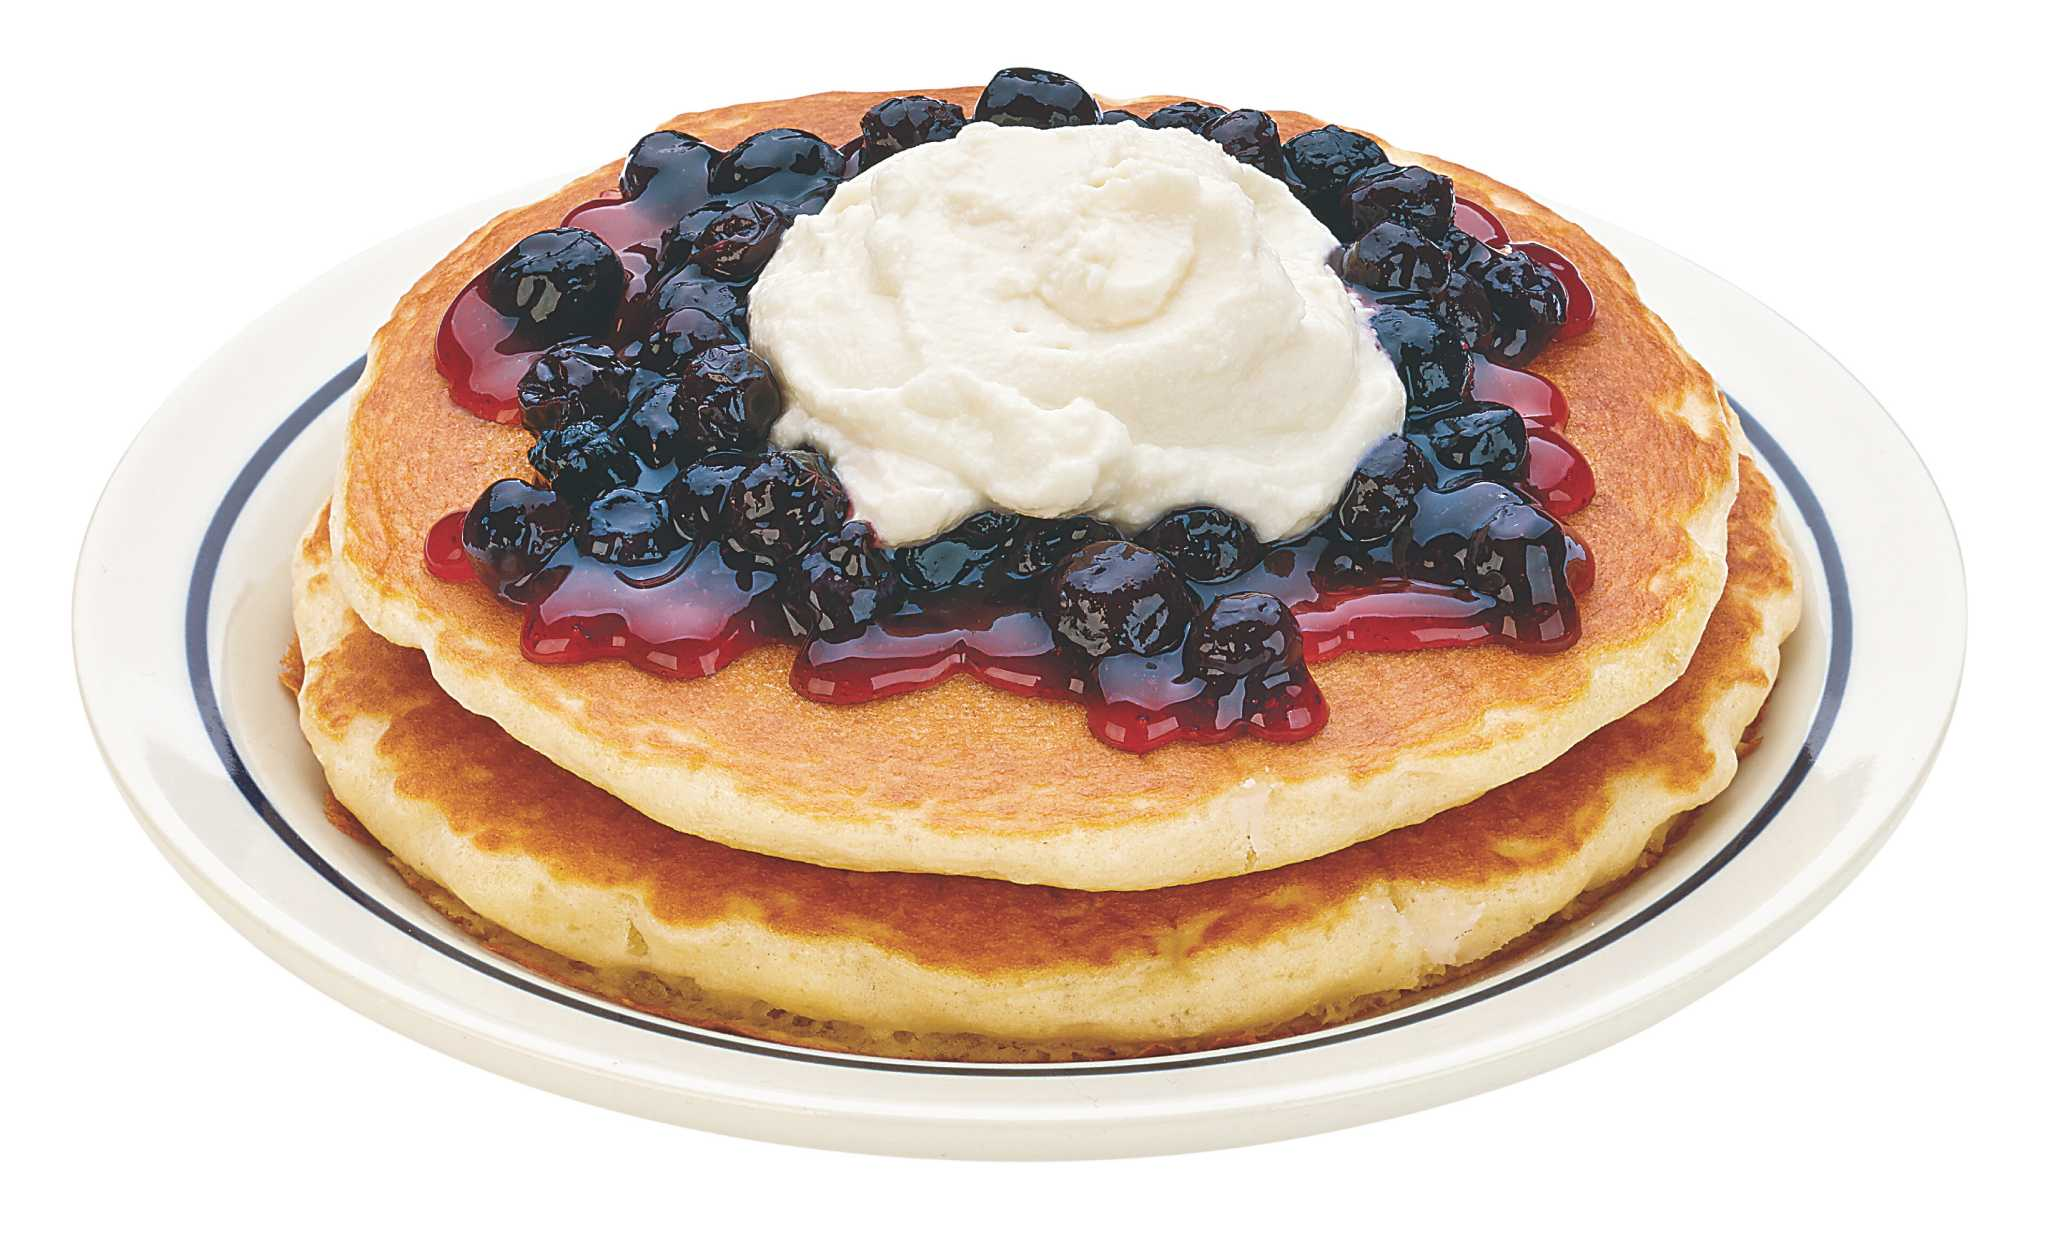 Clipart blueberrypancakes clipart library Free Blueberry Pancakes Cliparts, Download Free Clip Art, Free Clip ... clipart library